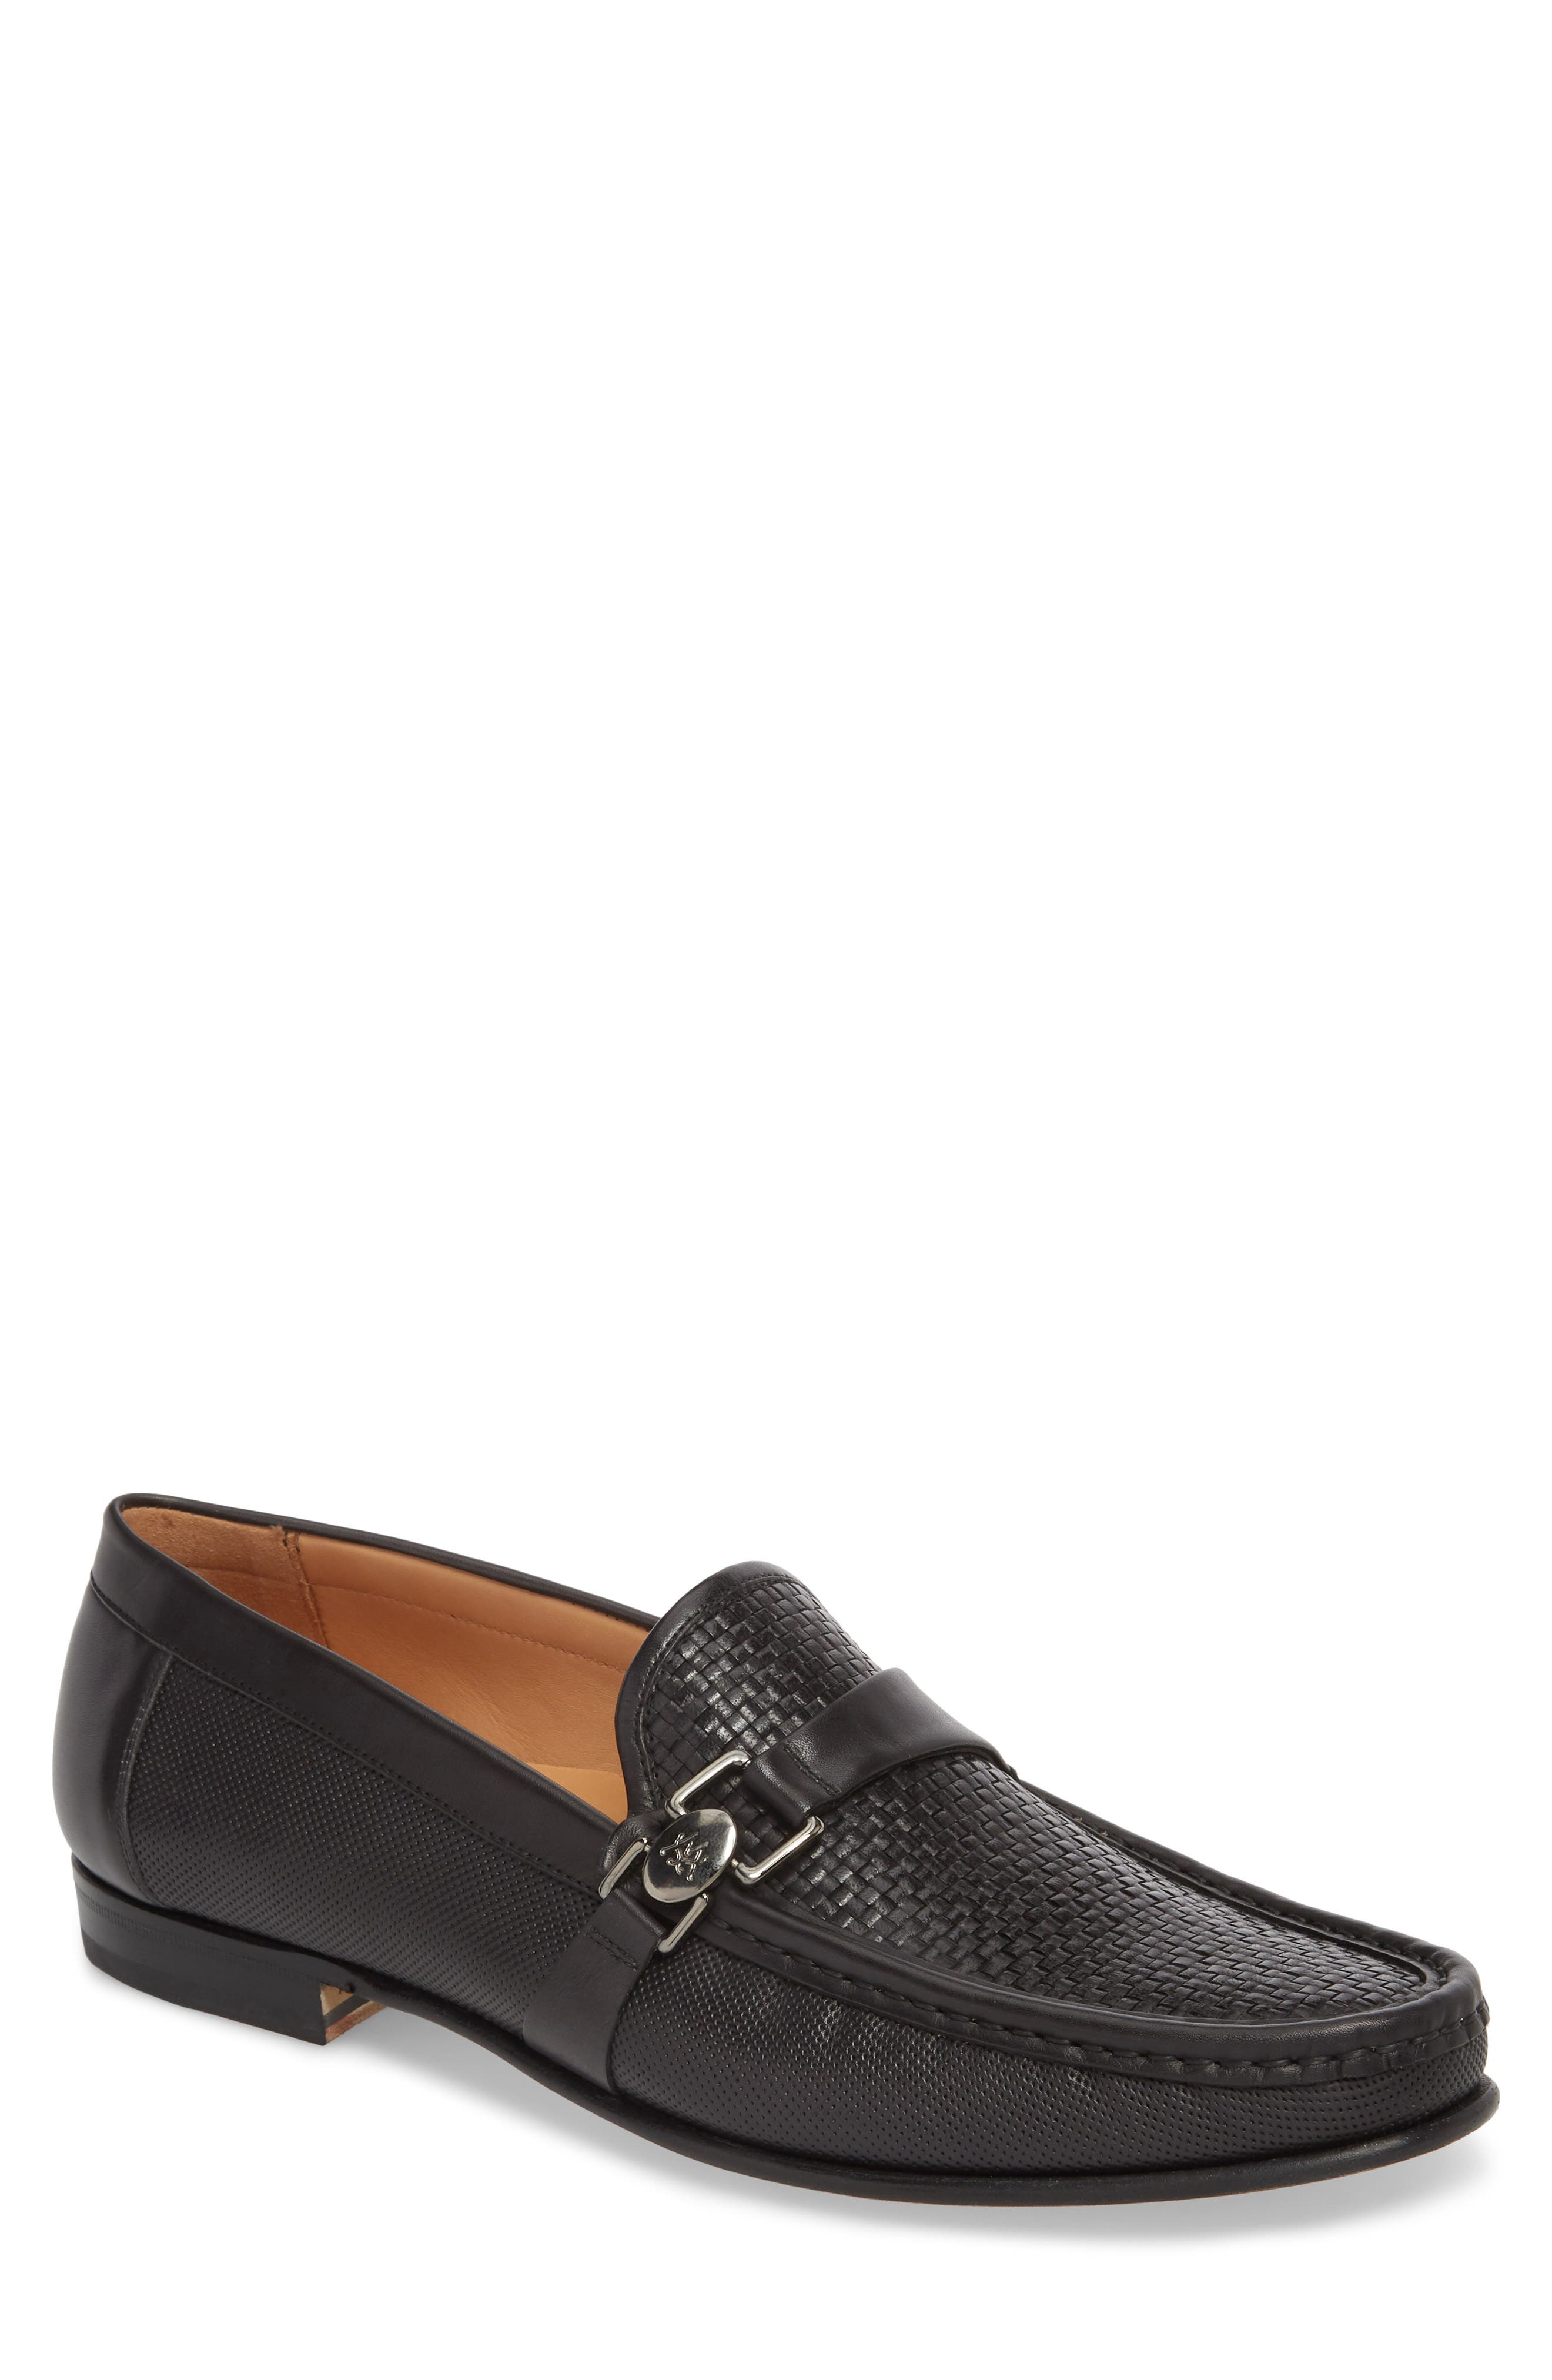 Horatio Woven Moc Toe Loafer,                         Main,                         color, 001